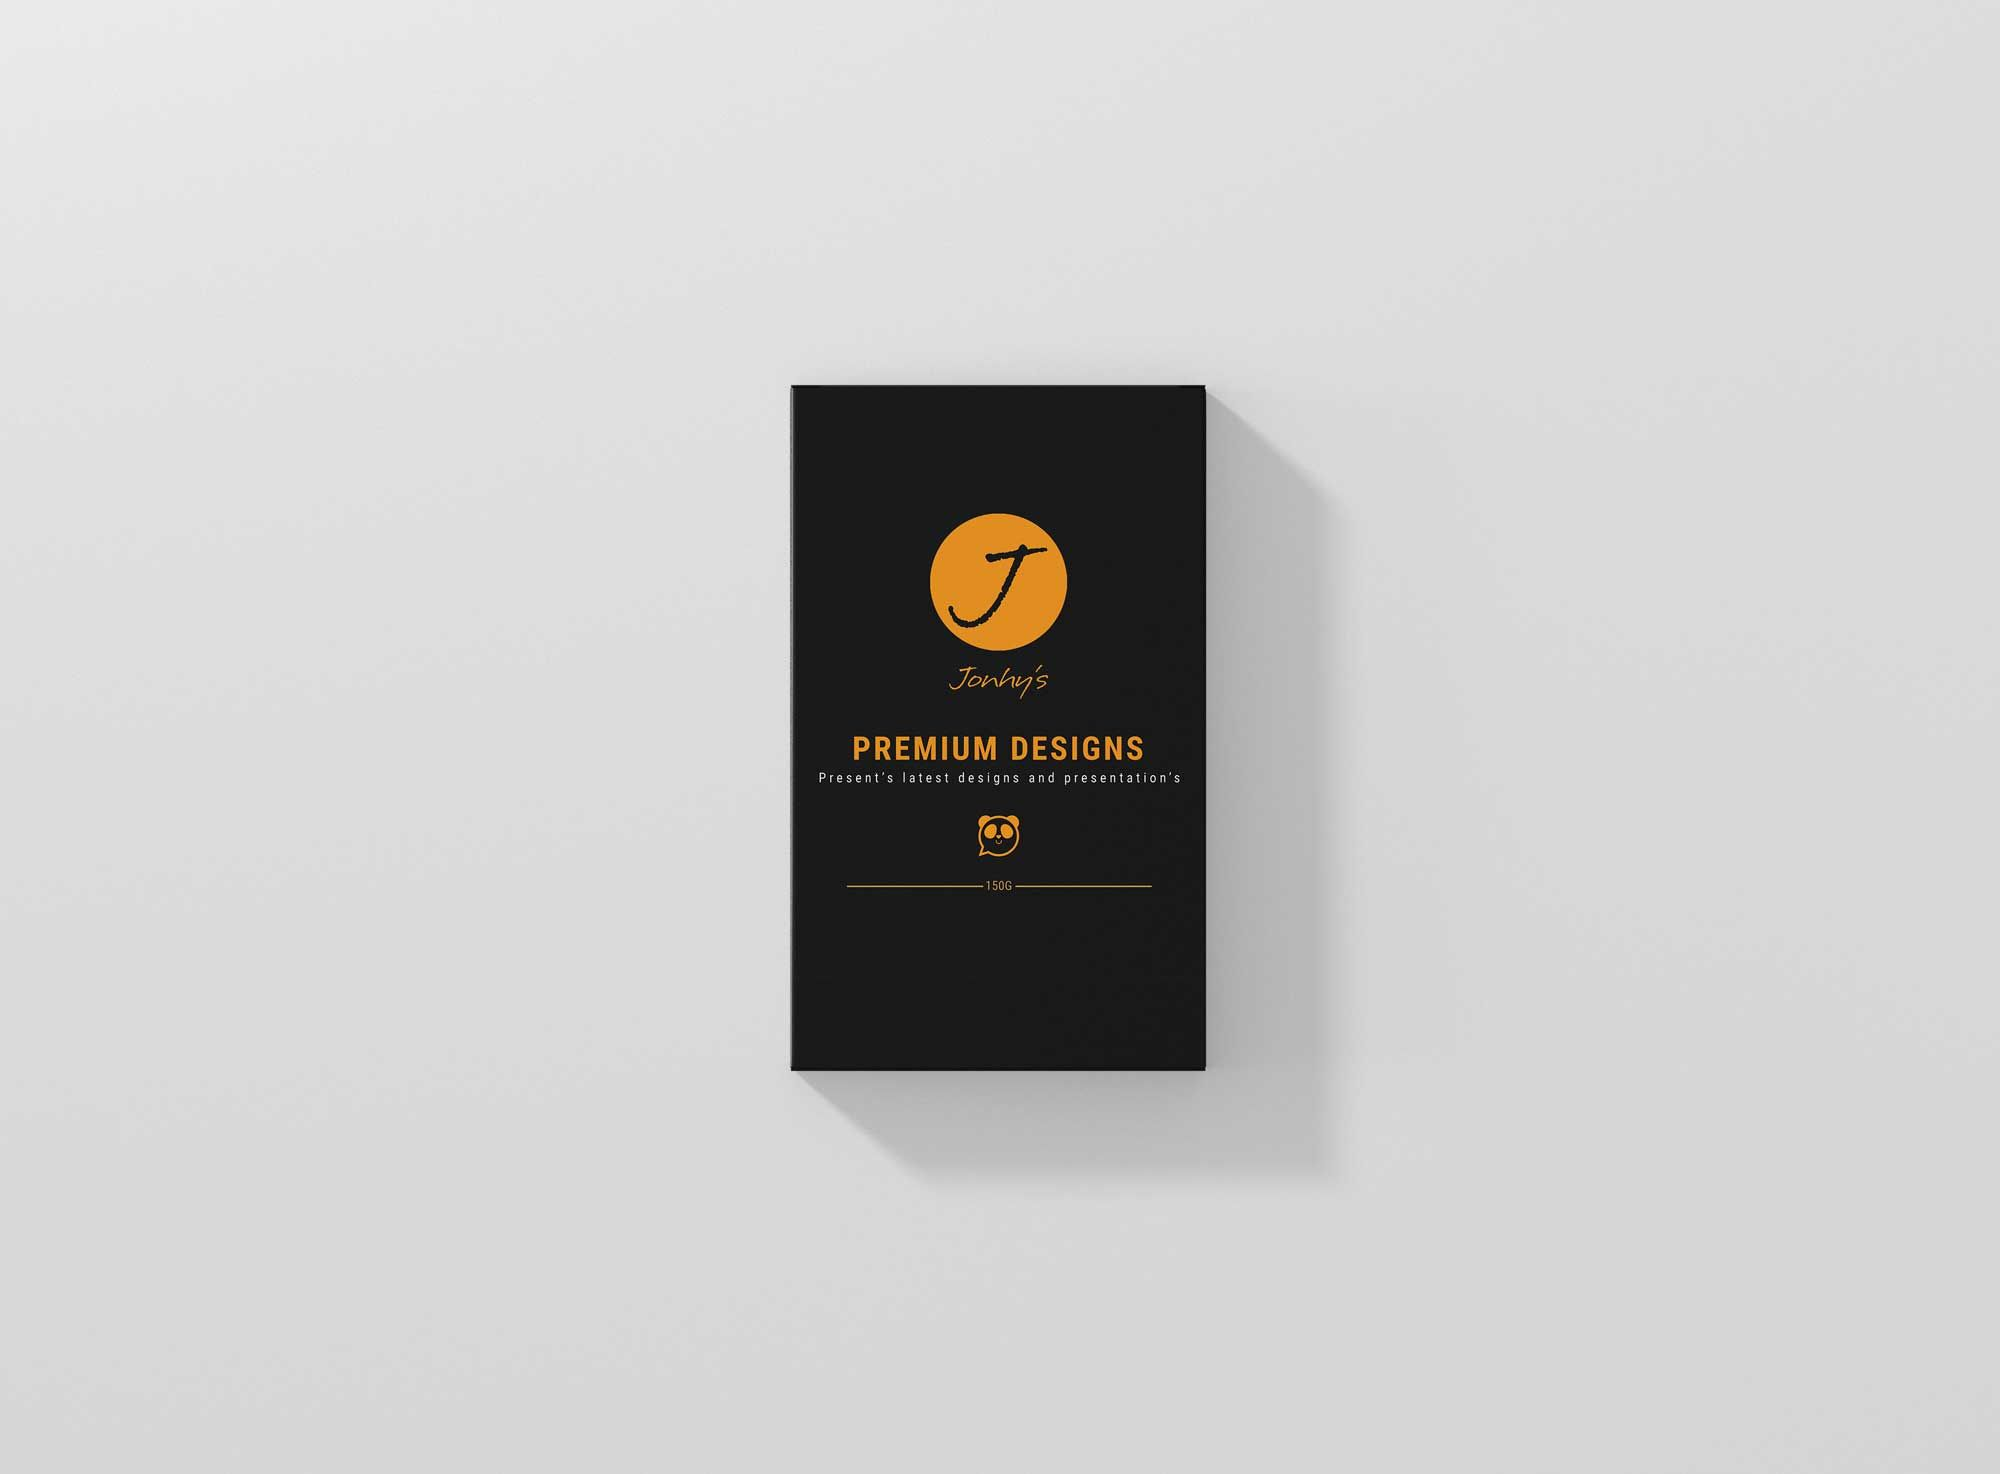 Download In Order To Help You Present A Logo Design Mockup To Your Client In A Super Polished Way We Ve Gathered The Premium Logo Design Mockup Box Mockup Pencil Boxes